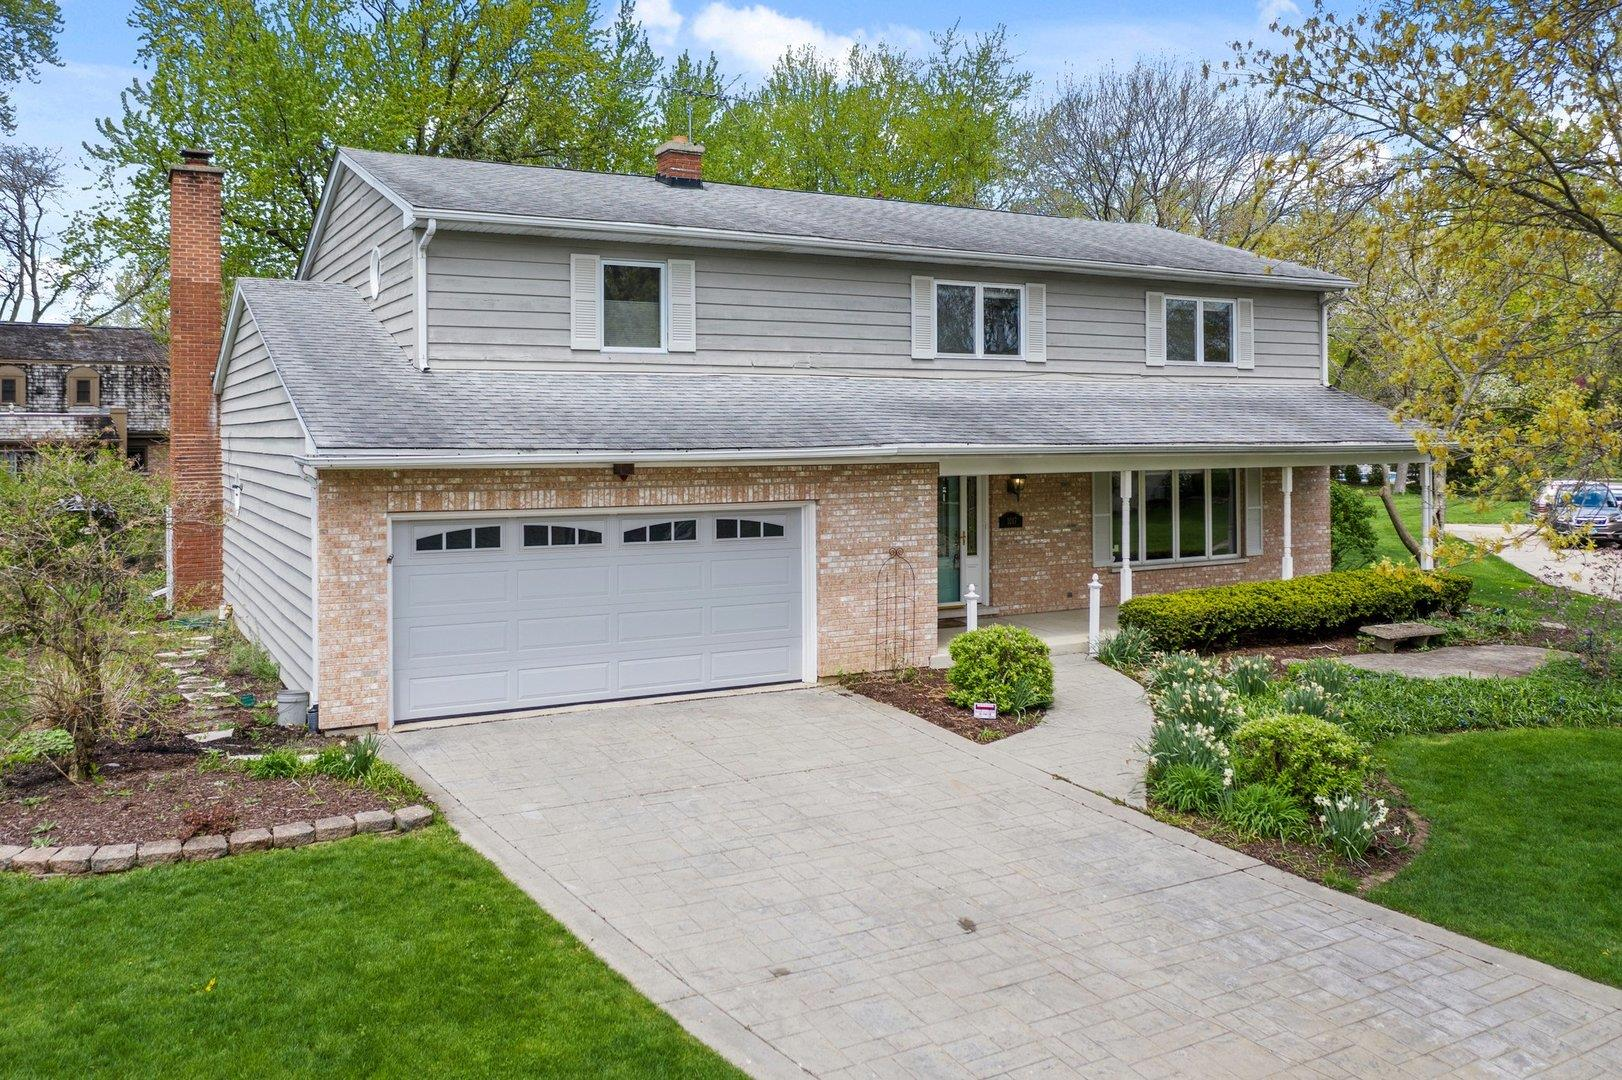 1017 Royal Blackheath Court, Naperville, IL 60563 - #: 11019016